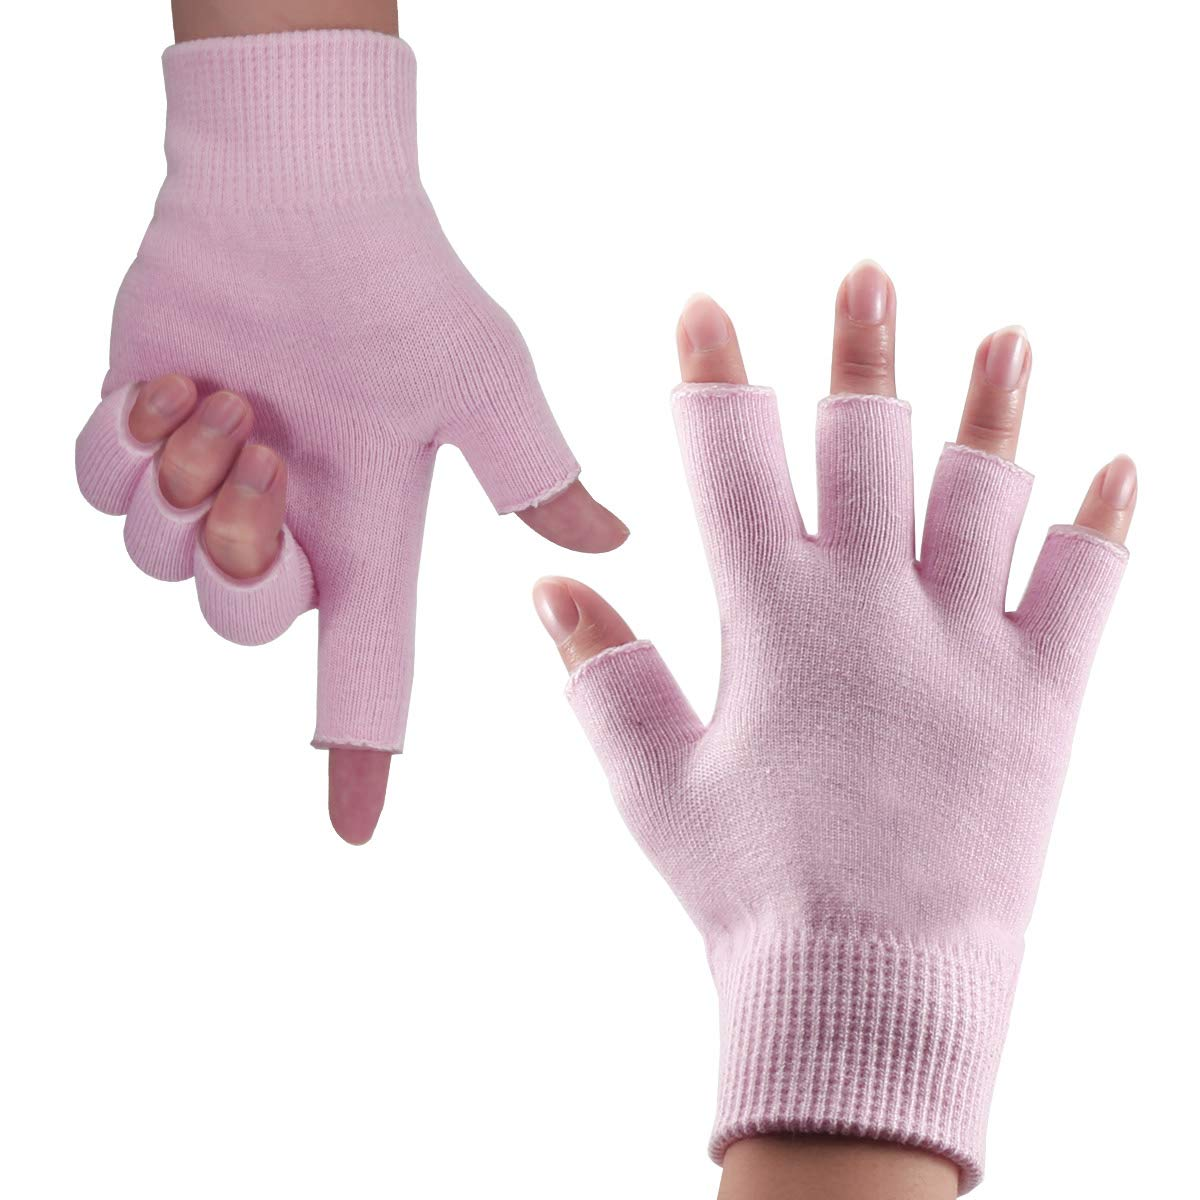 Happon Gel Moisturizing Spa Gloves Fingerless Pink Women's Gel Moisturizing Gloves Day Night Instantly Repair Eczema Dry Rough and Cracked Hands : Beauty